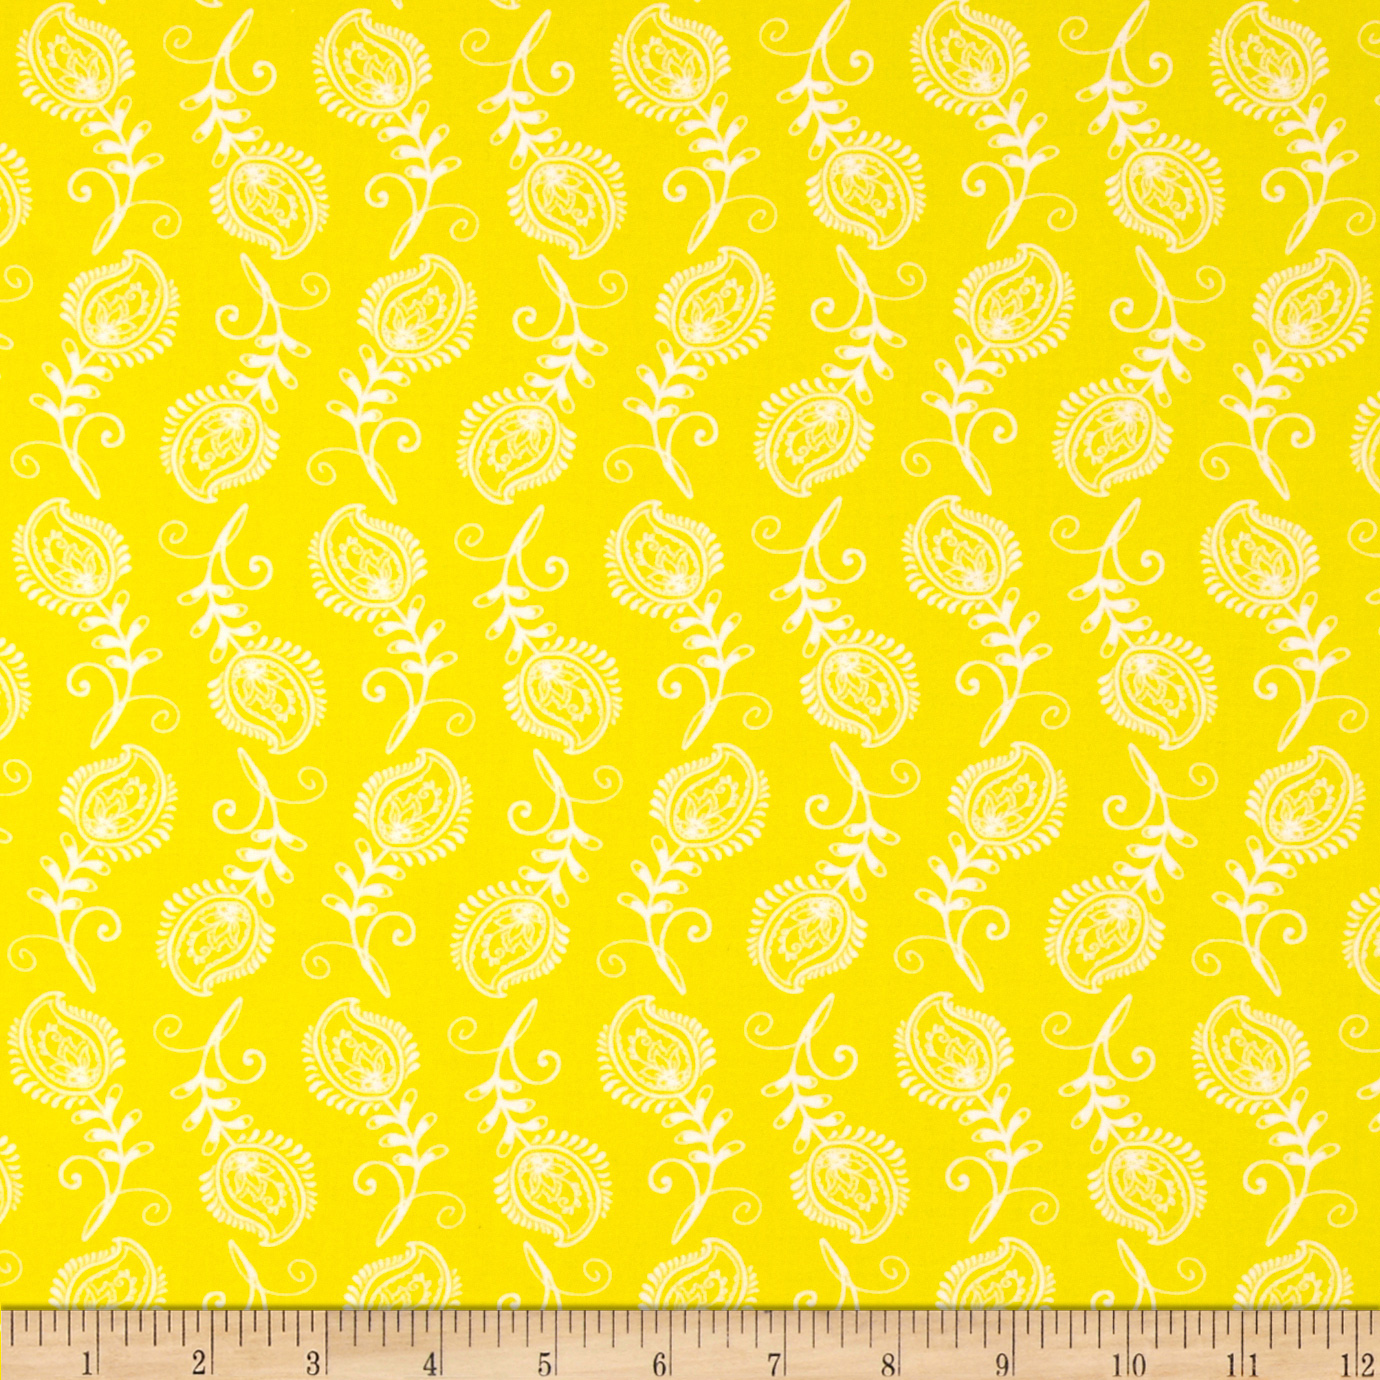 Contempo Feathers Yellow/White